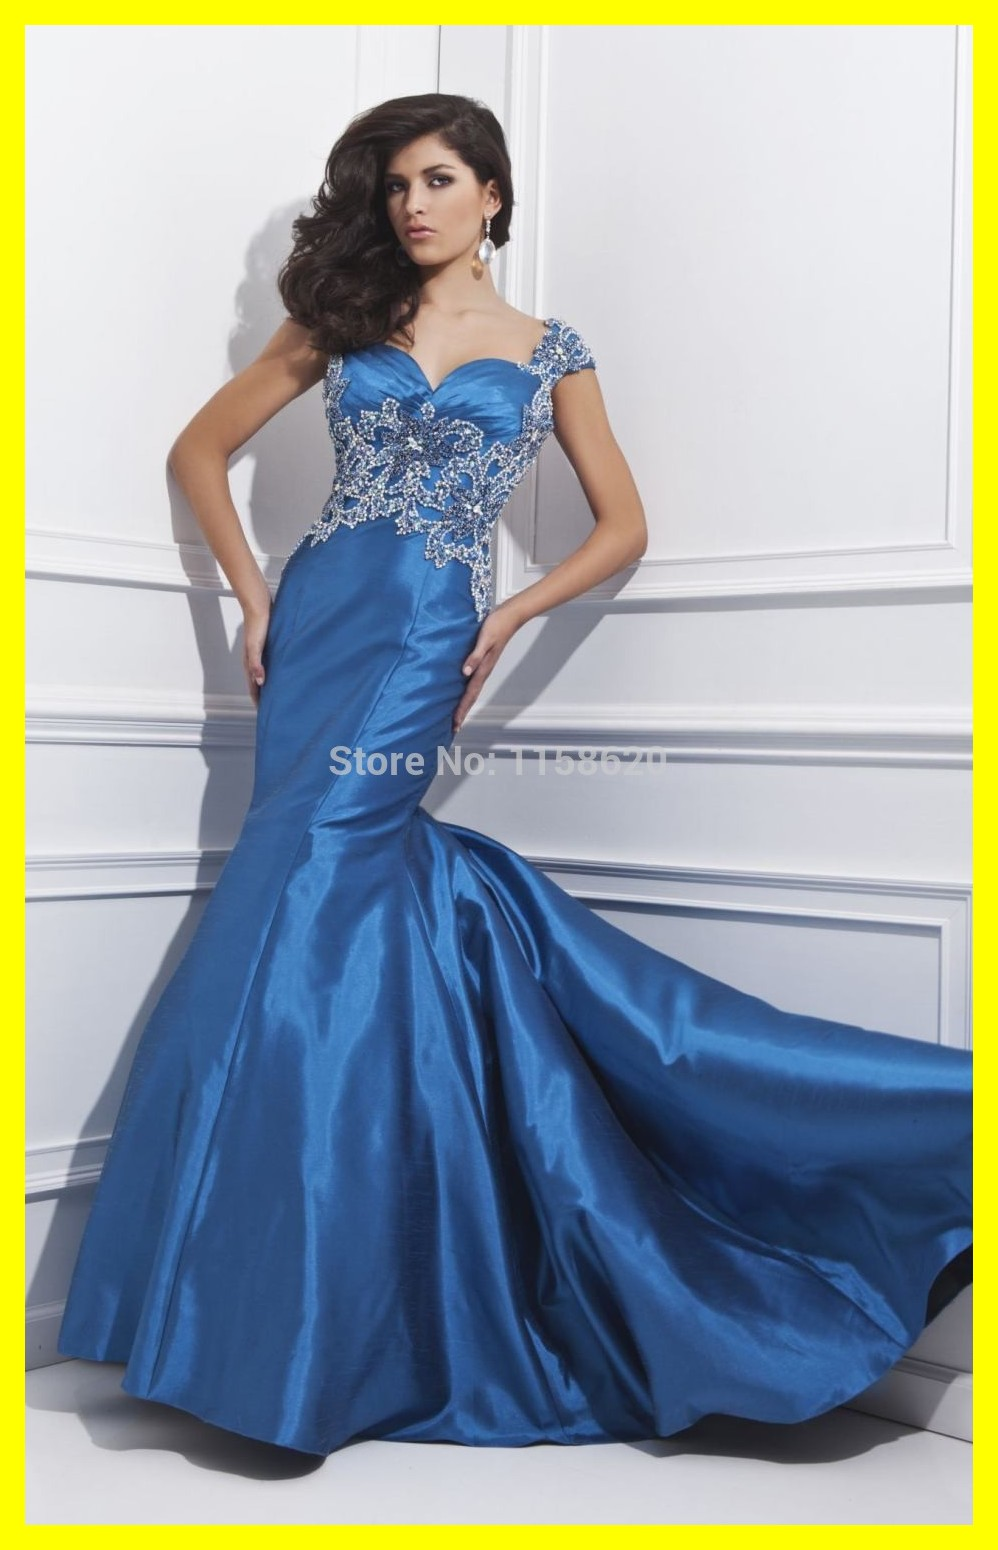 Ball Dresses Online Australia - Boutique Prom Dresses